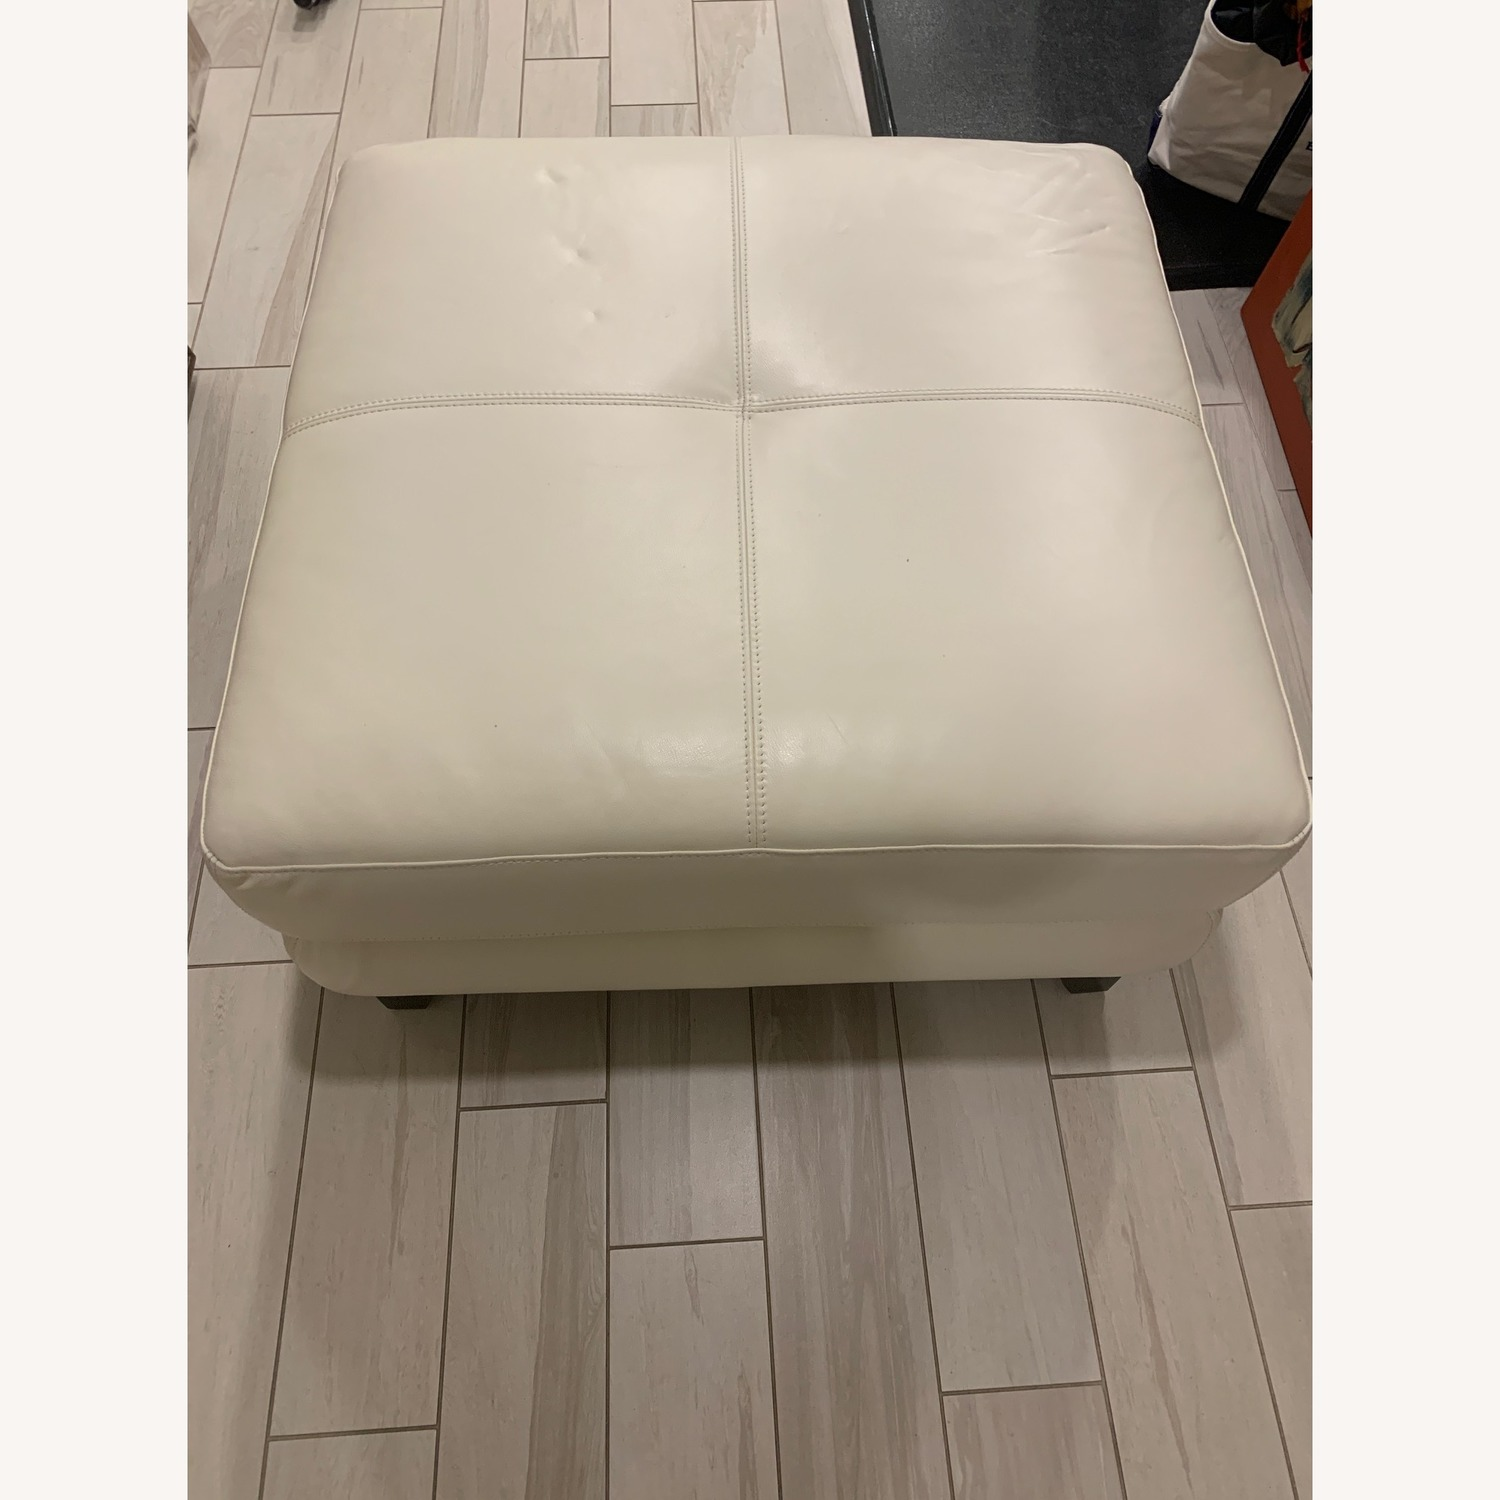 Chateau D'ax White Leather Ottoman